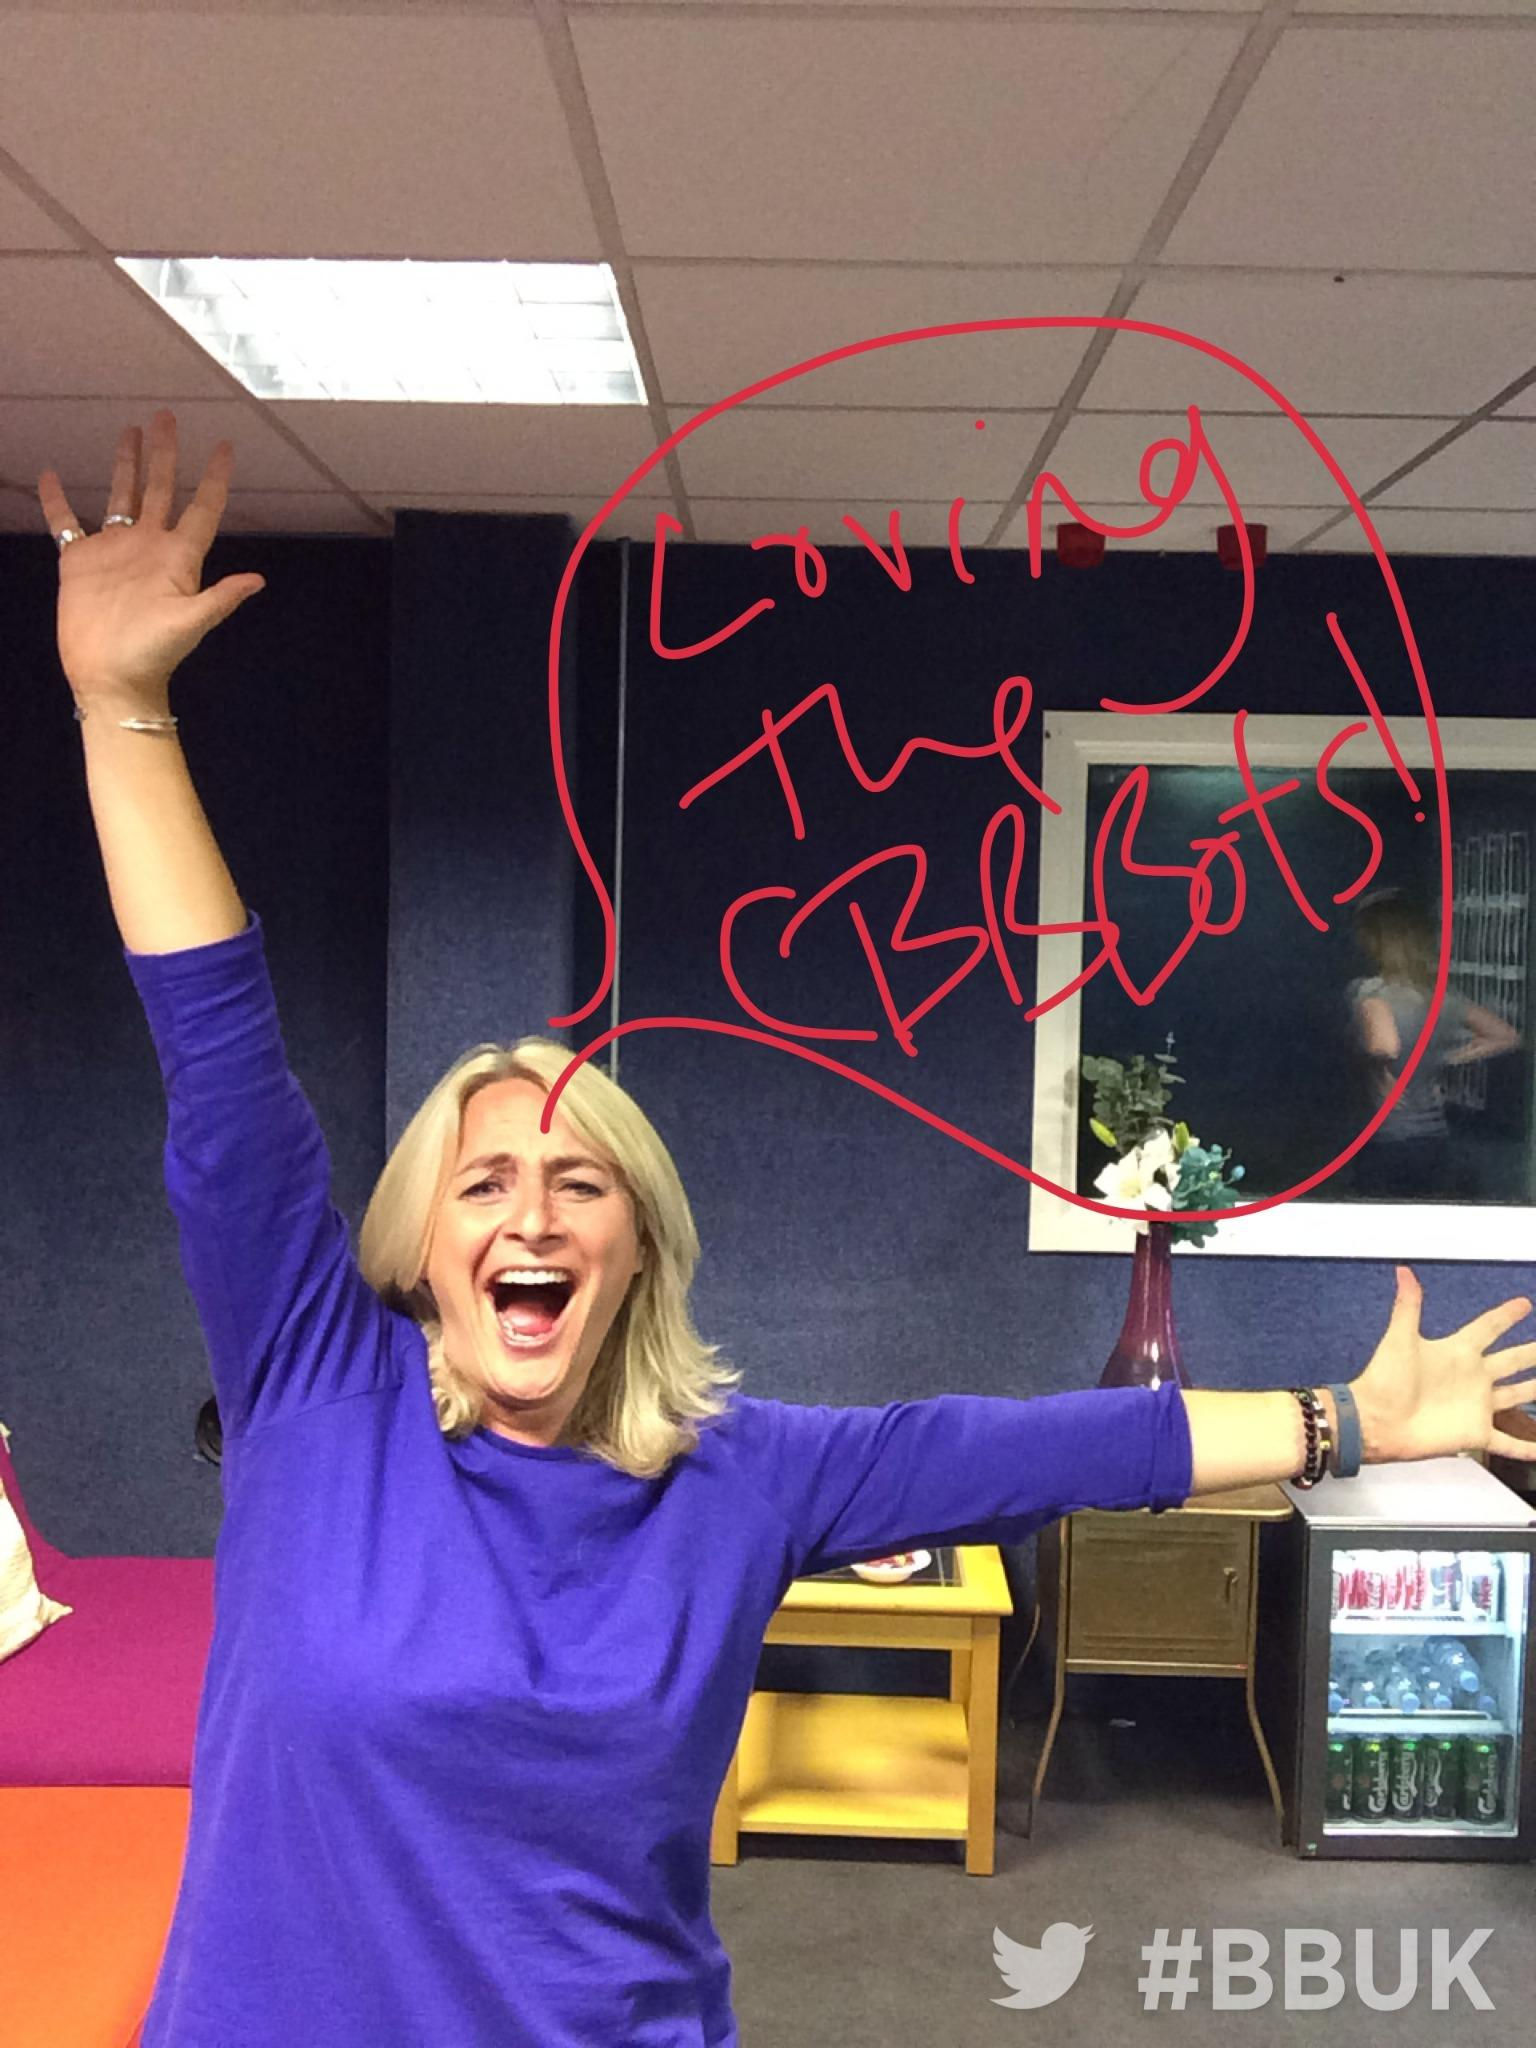 It's an extra special #CBBBOTS tonight, so let's meet our extra special panel. First up is wonder woman @EmmaKennedy http://t.co/2U0OsPgY0D